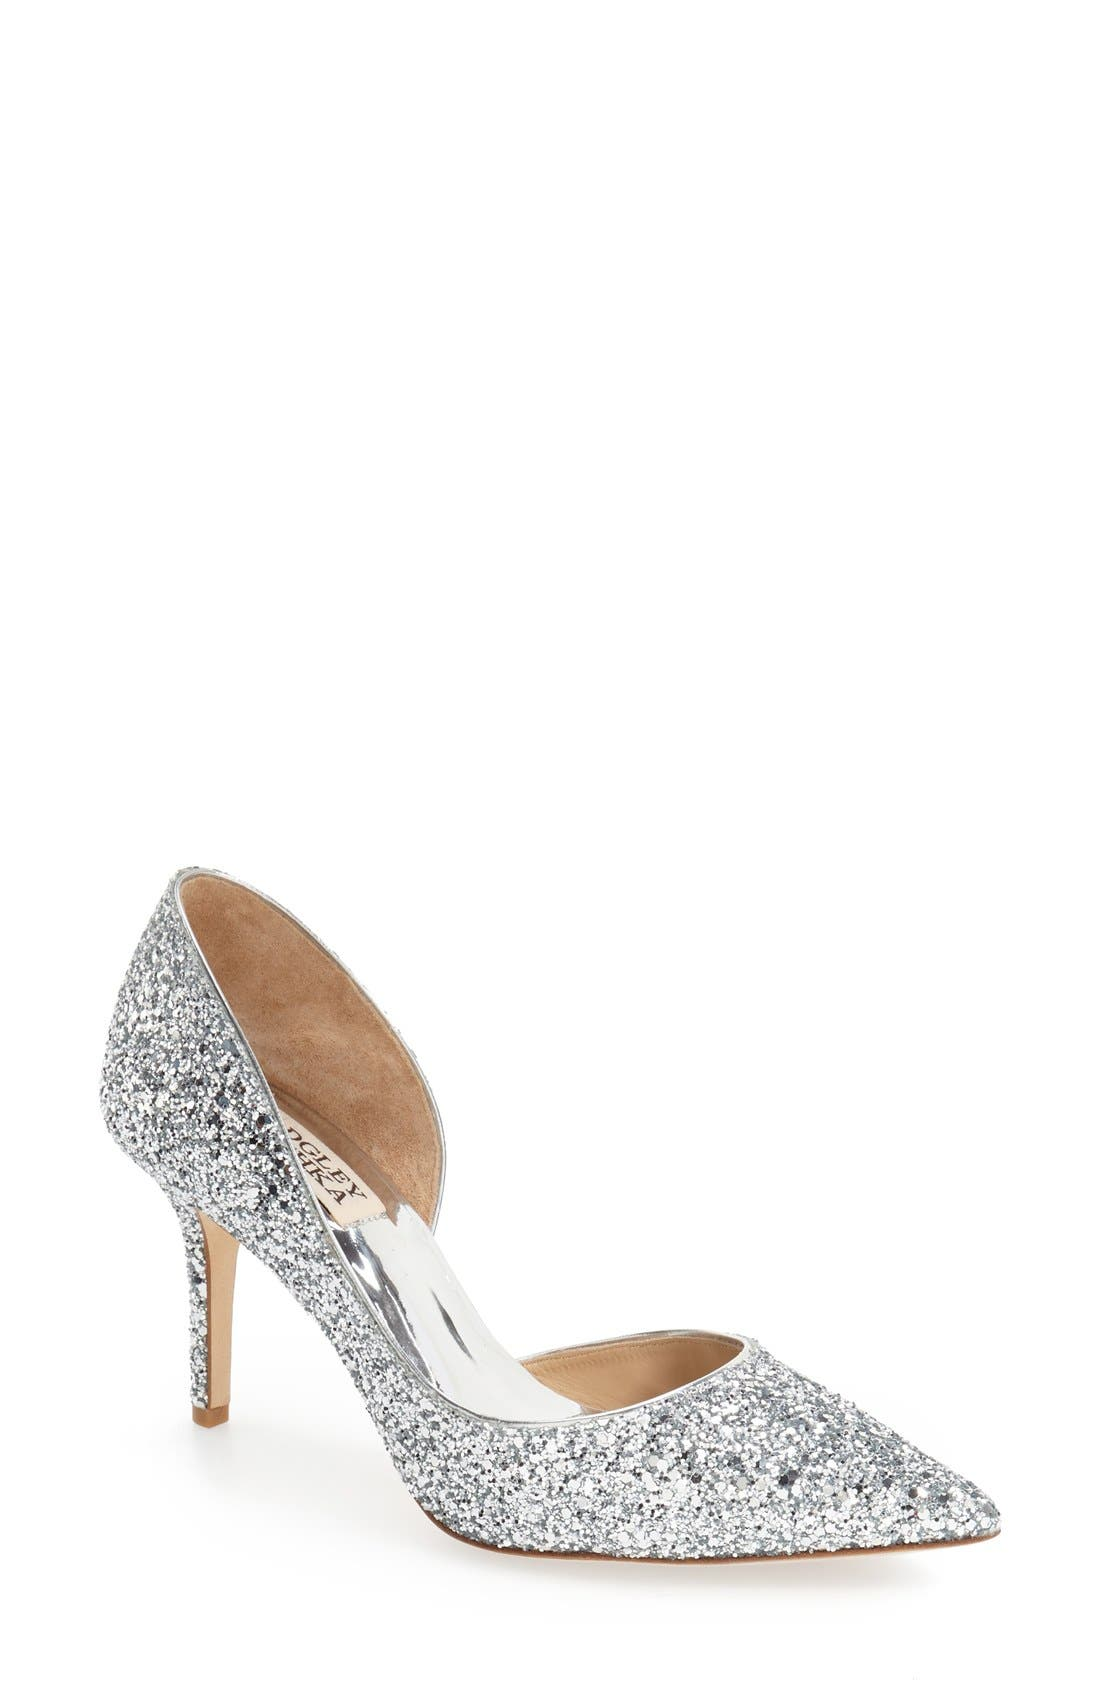 BADGLEY MISCHKA Daisy Embellished Pointy Toe Pump